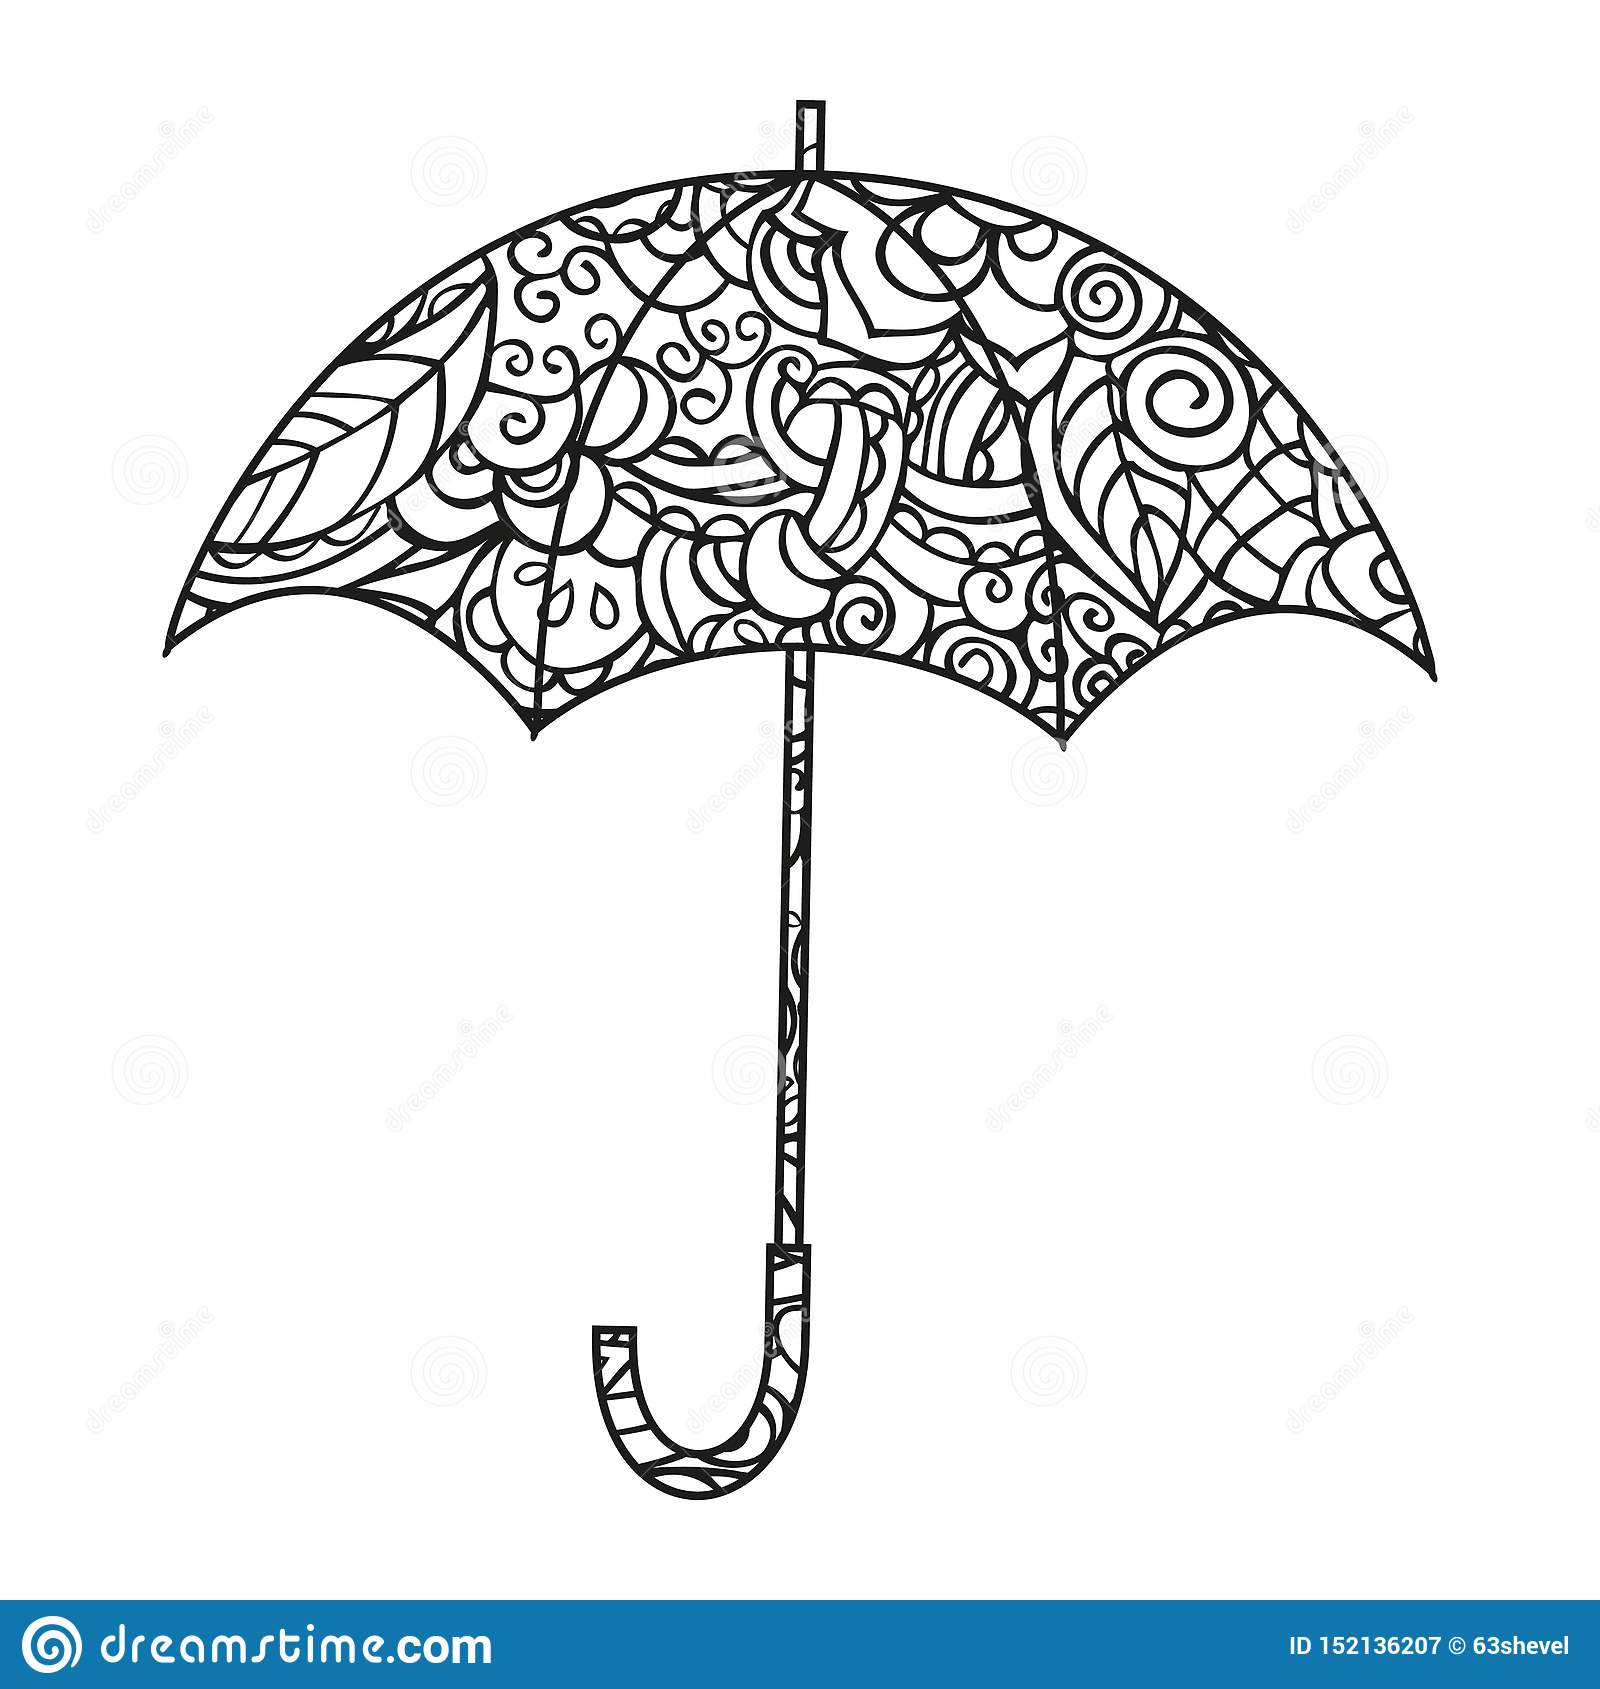 Umbrella. Coloring Page. Isolated Black And White Vector ...